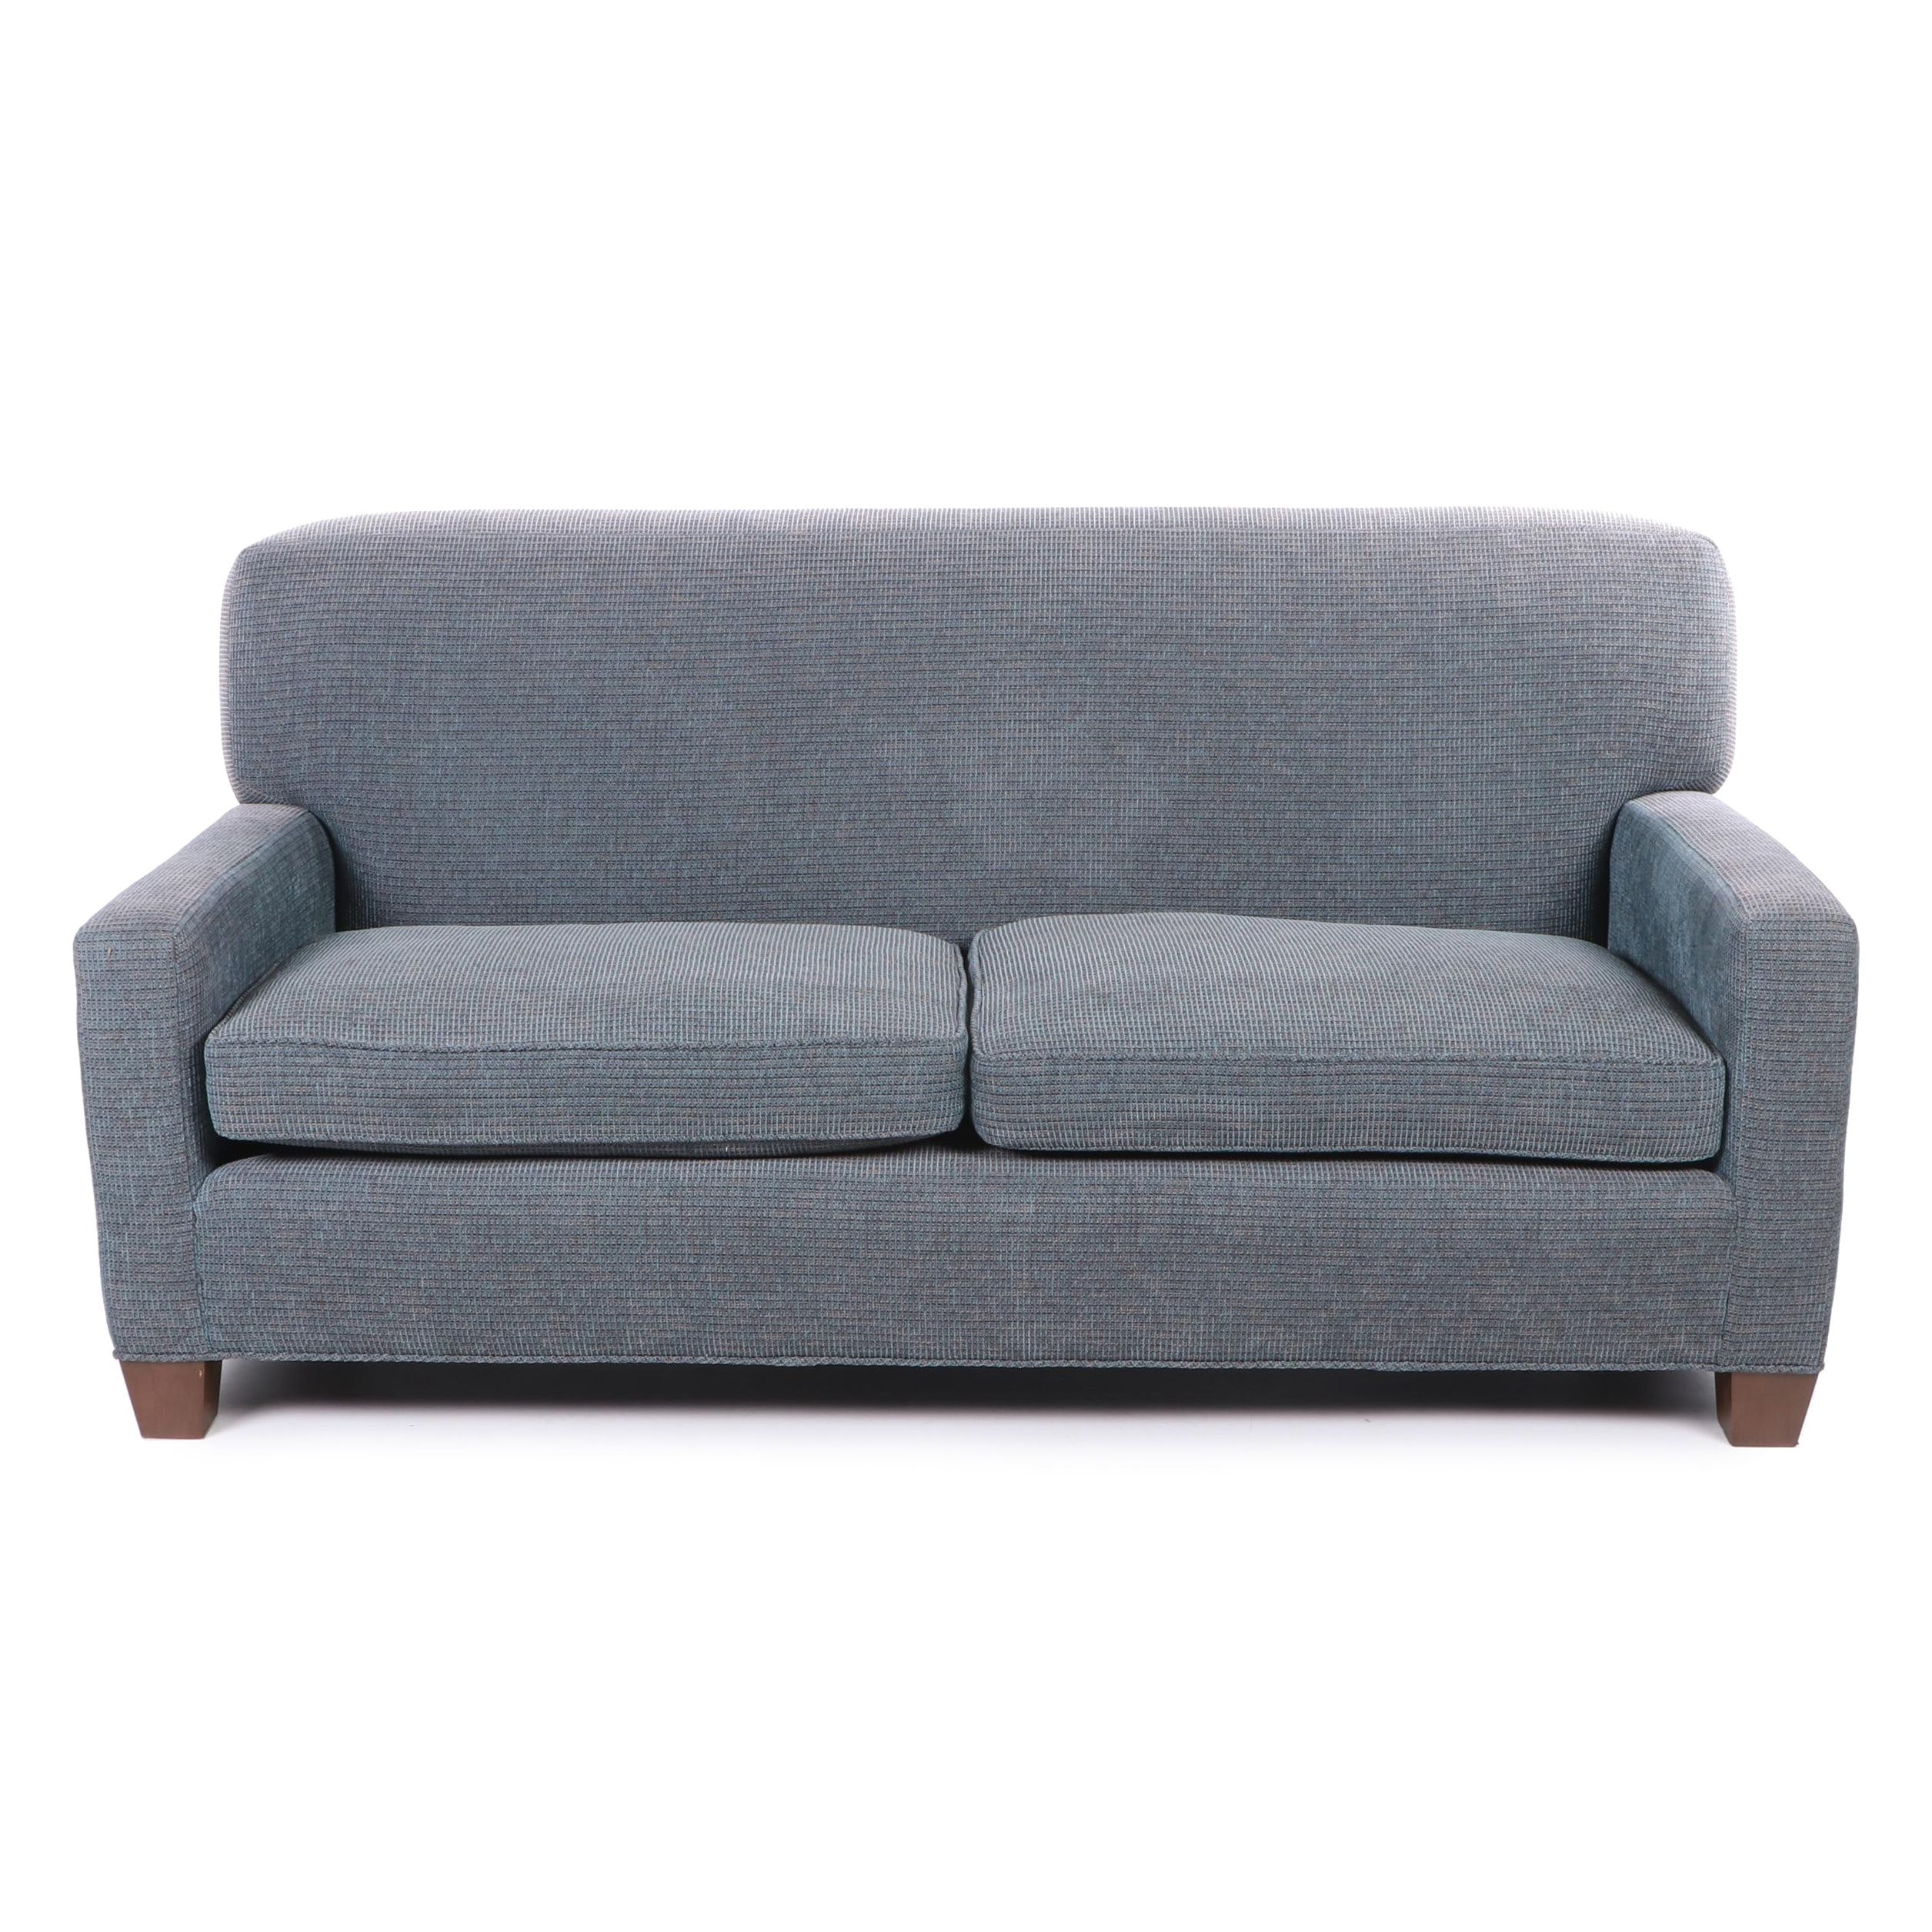 Track Arm Tight Back Upholstered Sofa, Contemporary